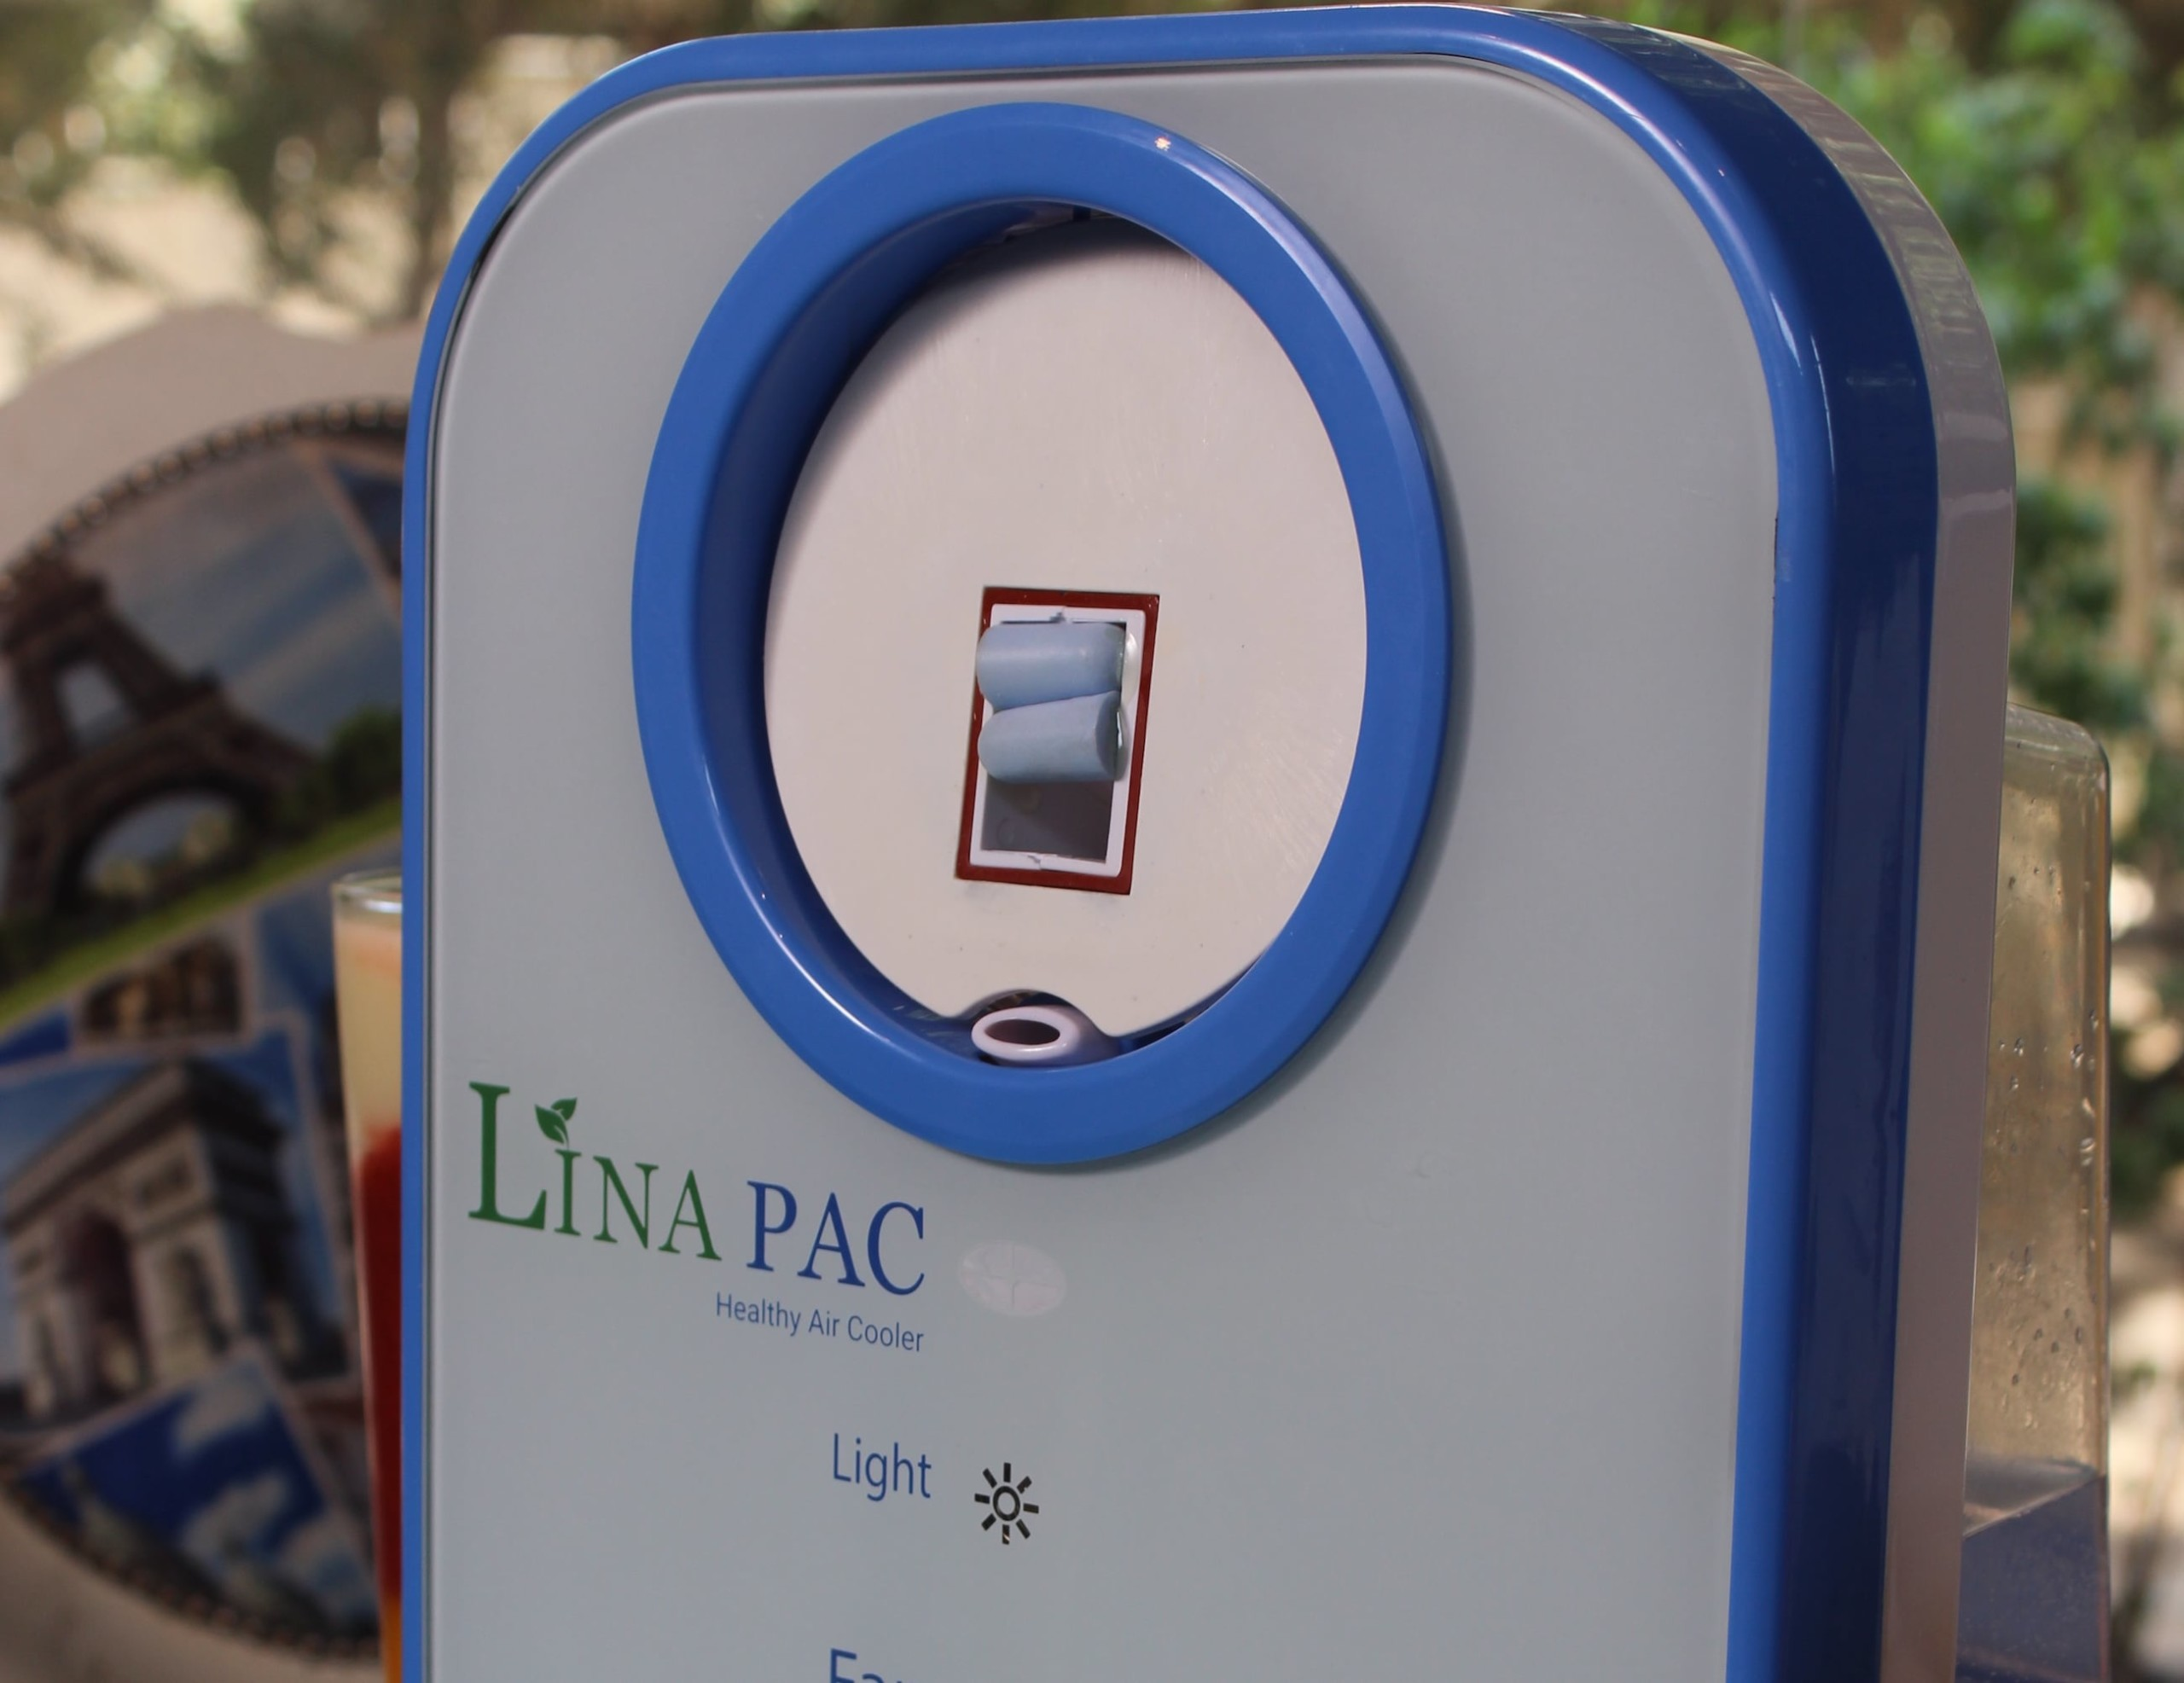 Lina-PAC Personal Air Conditioner and Diffuser keeps you cool